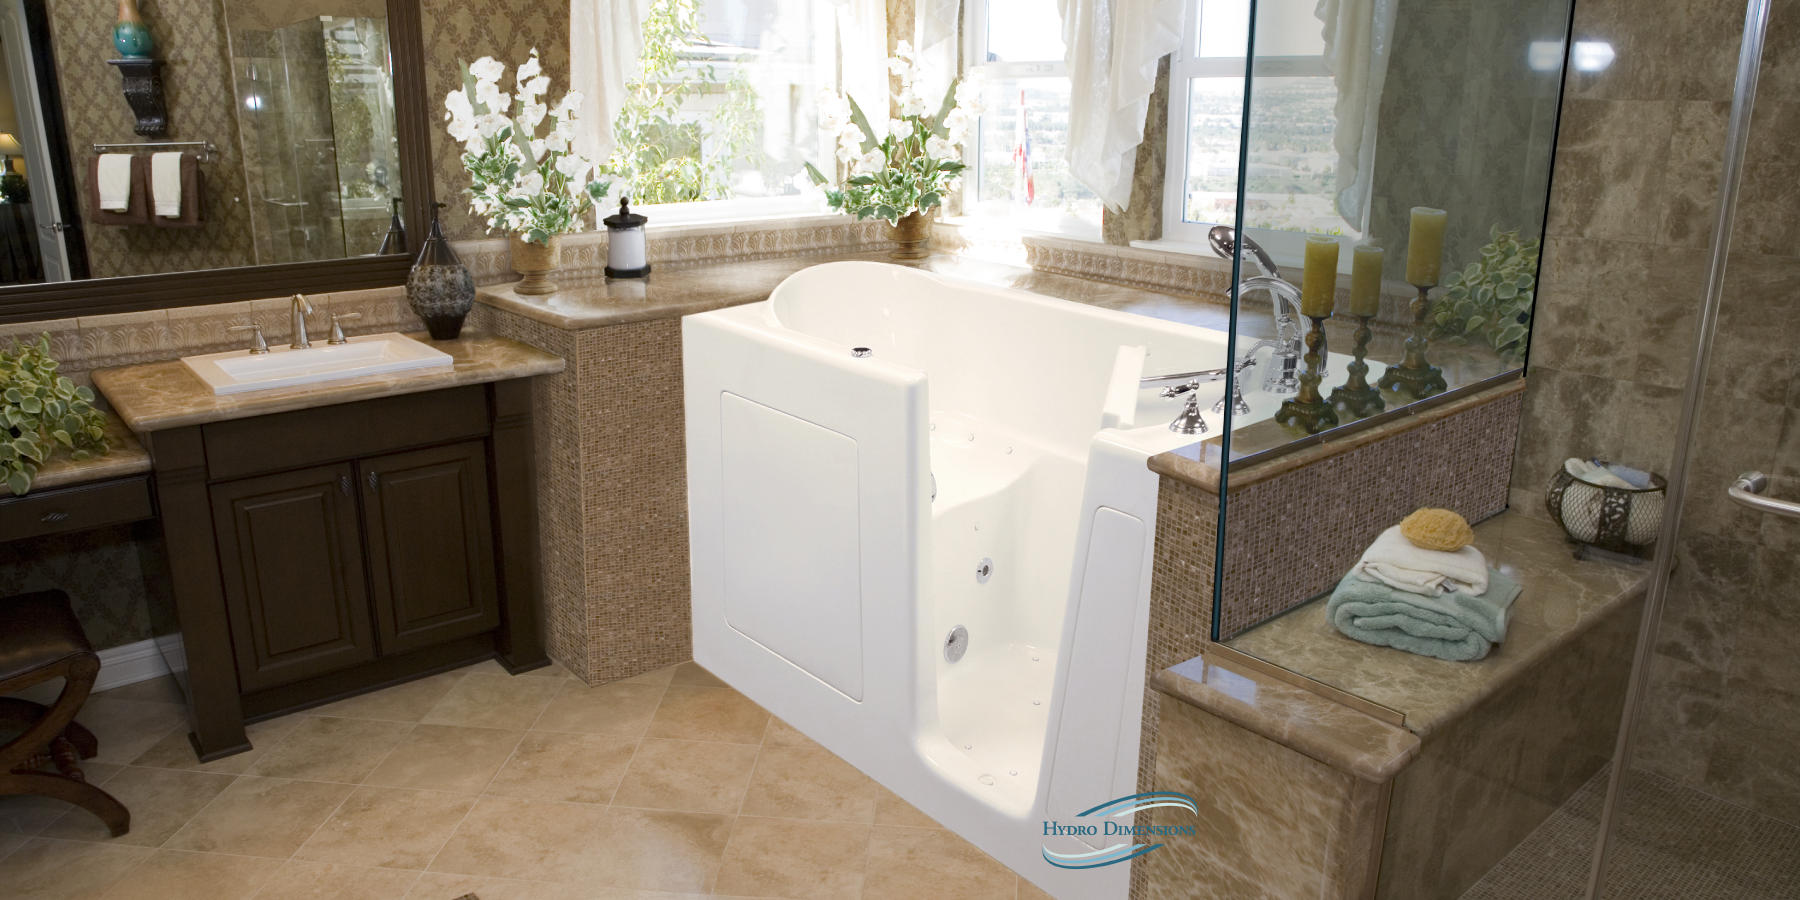 Hydro Dimensions Walk In Tubs   Handcrafted In The US   Call (888) 818 7111